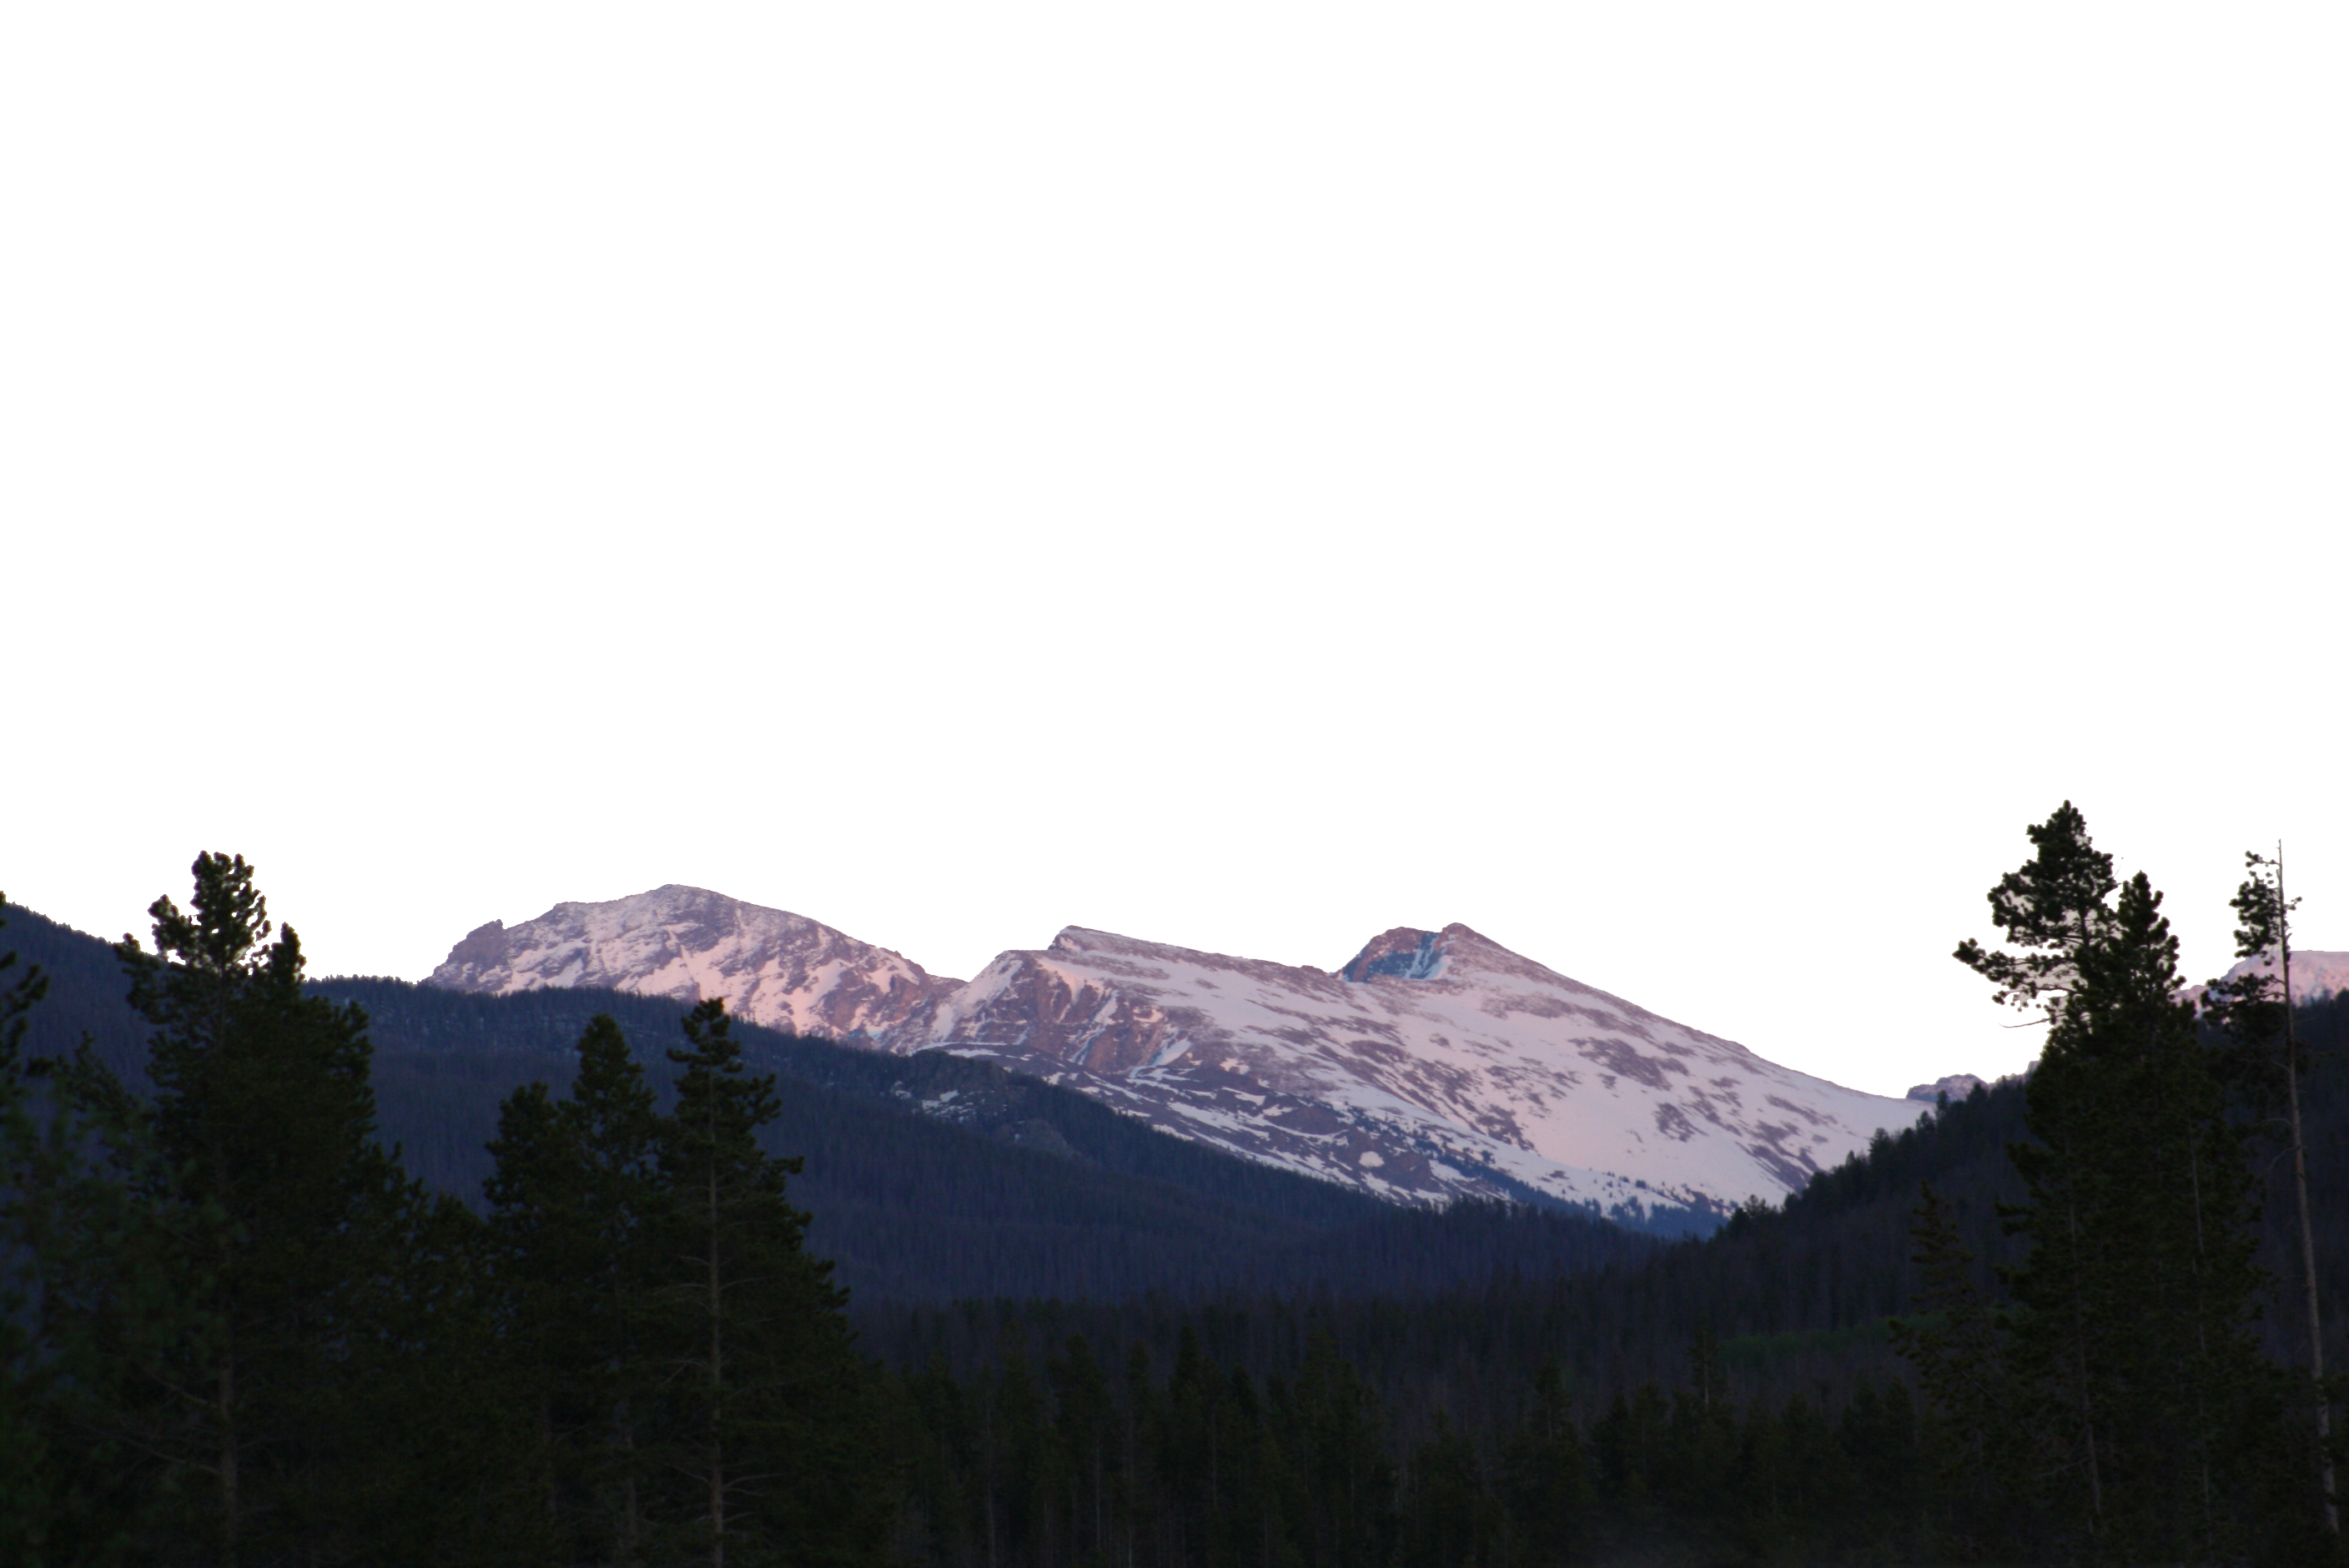 Png photo background. Mountain transparent pictures free